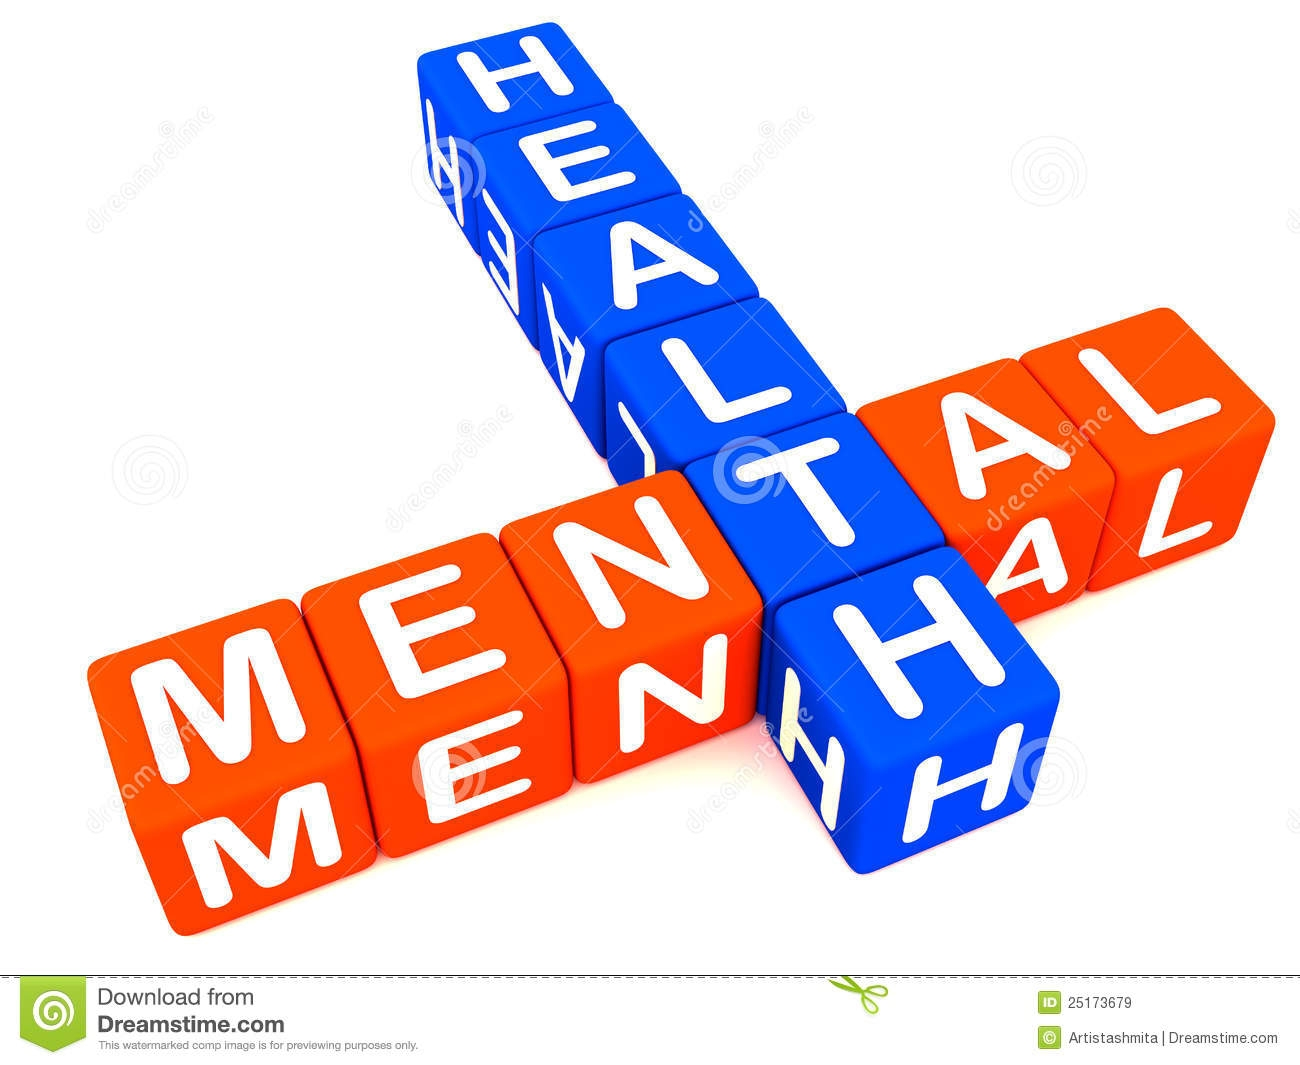 Addressing Mental Health Issues >> Maine Writer Addressing Mental Health Issues Echos From Worcester